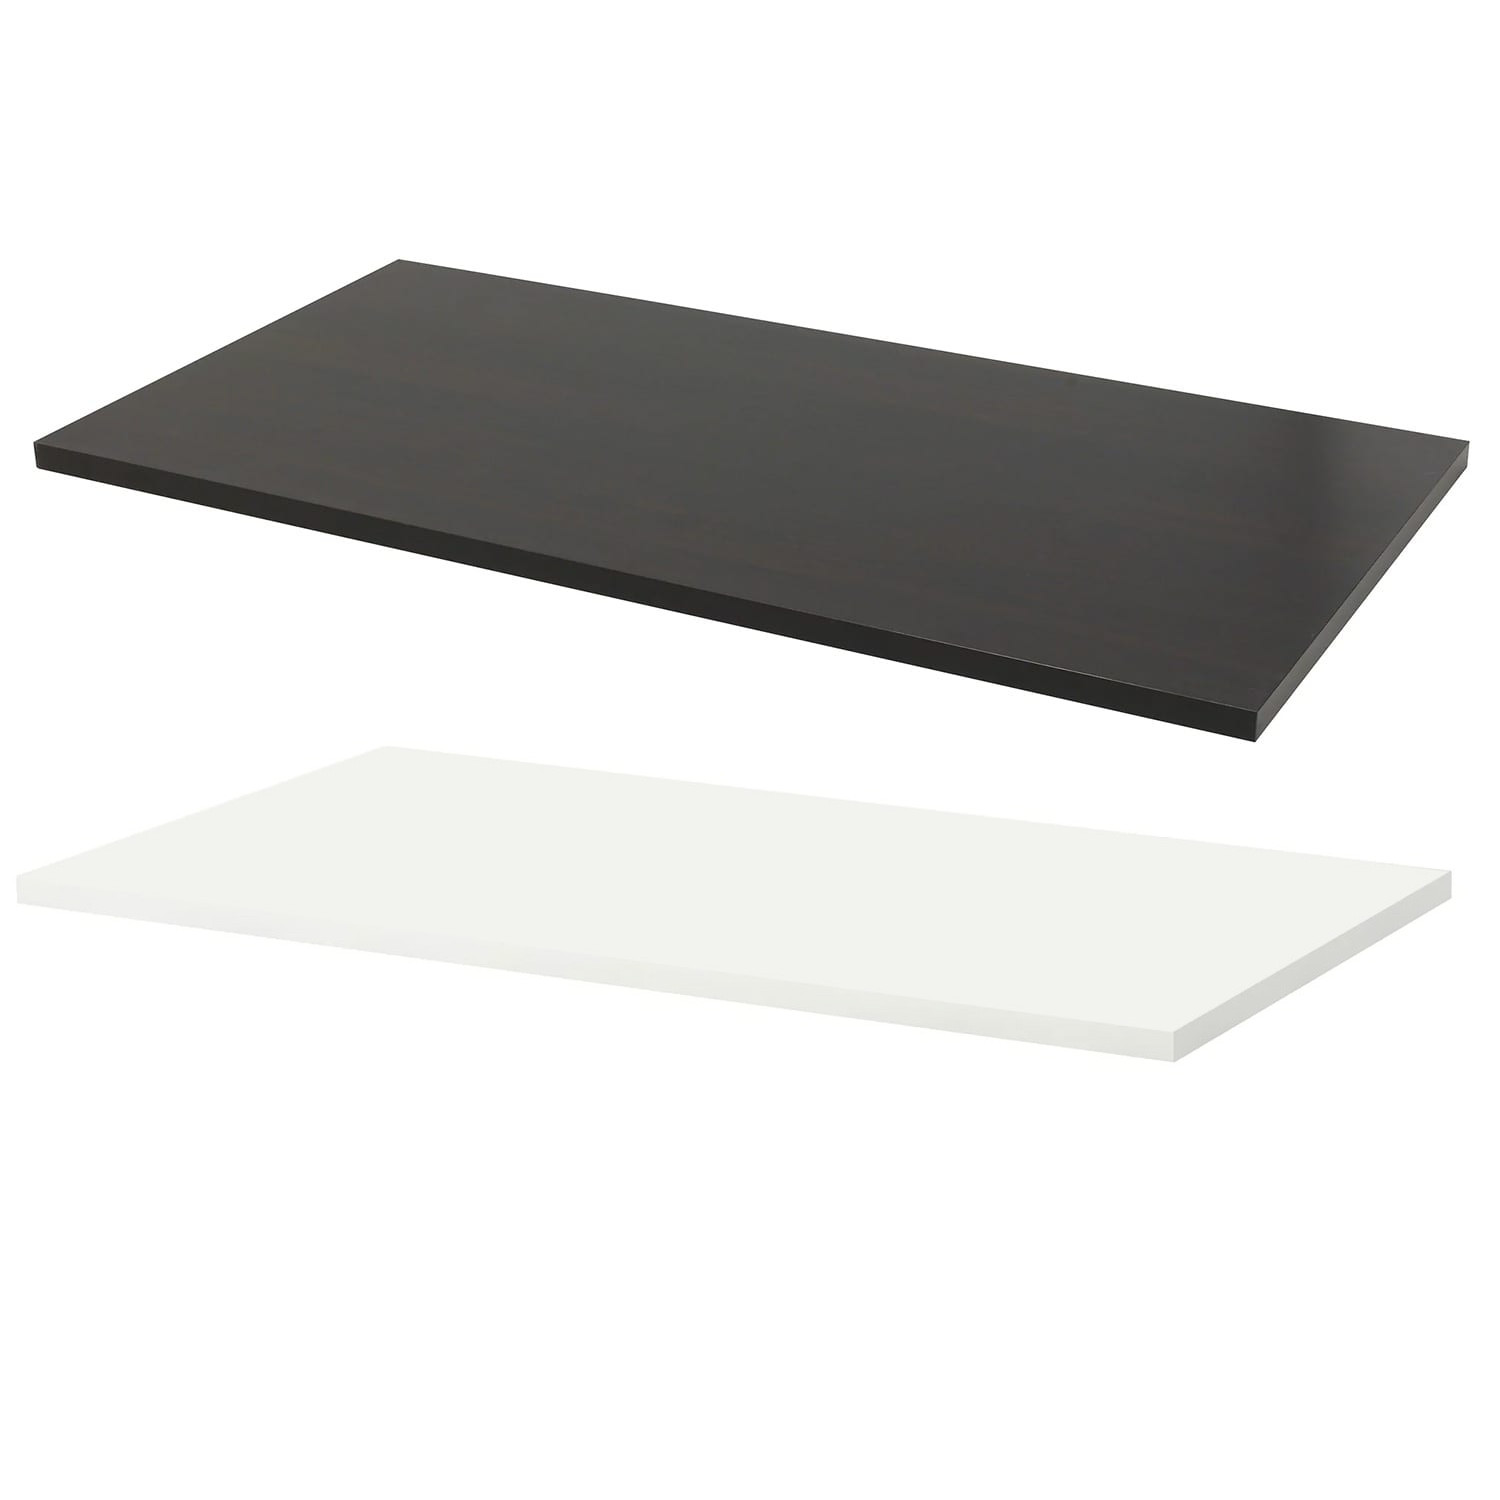 Premium Plain Rectangle Desk Tops 1200 x 800 mm various colours